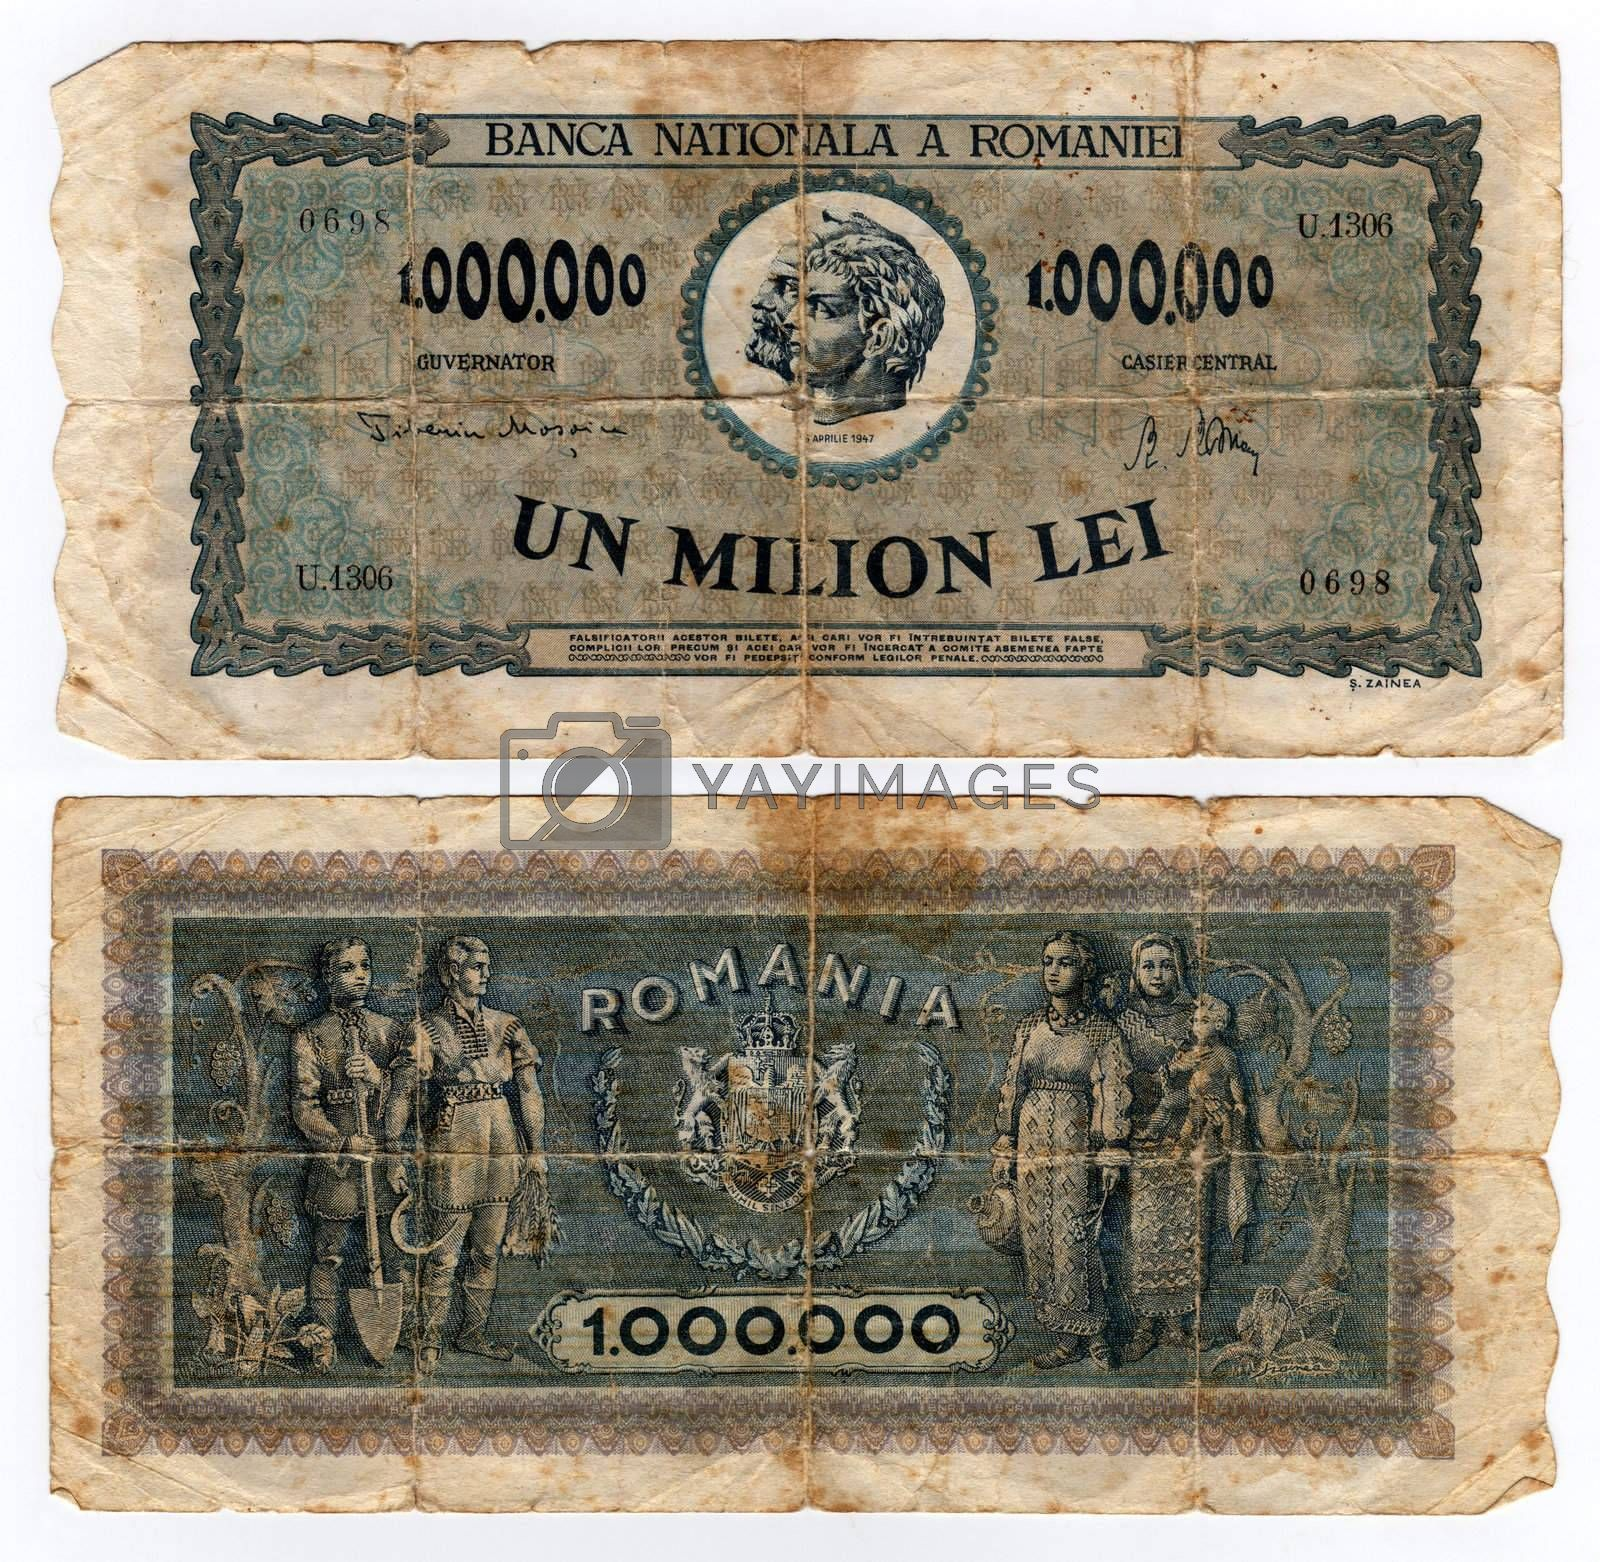 high resolution vintage romanian banknote from 1947